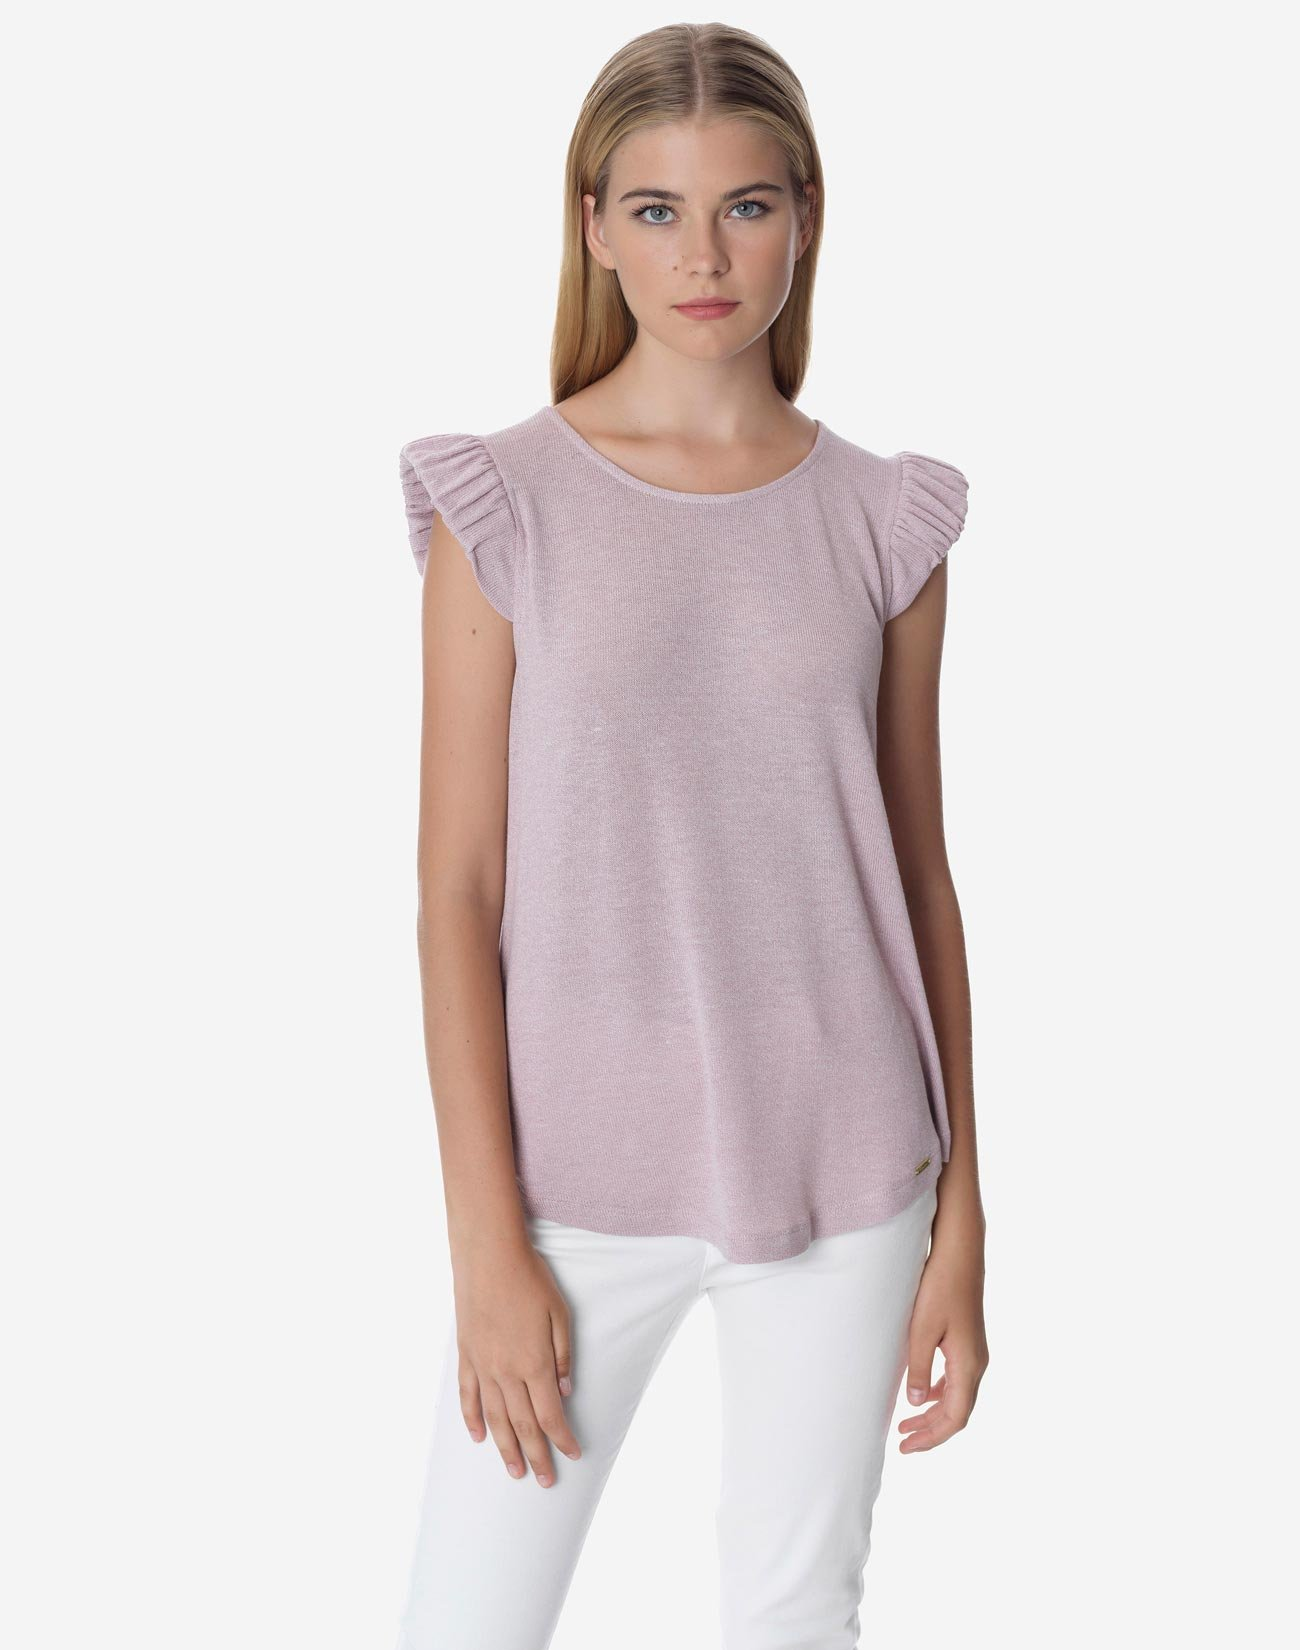 Top with gathered sleeves